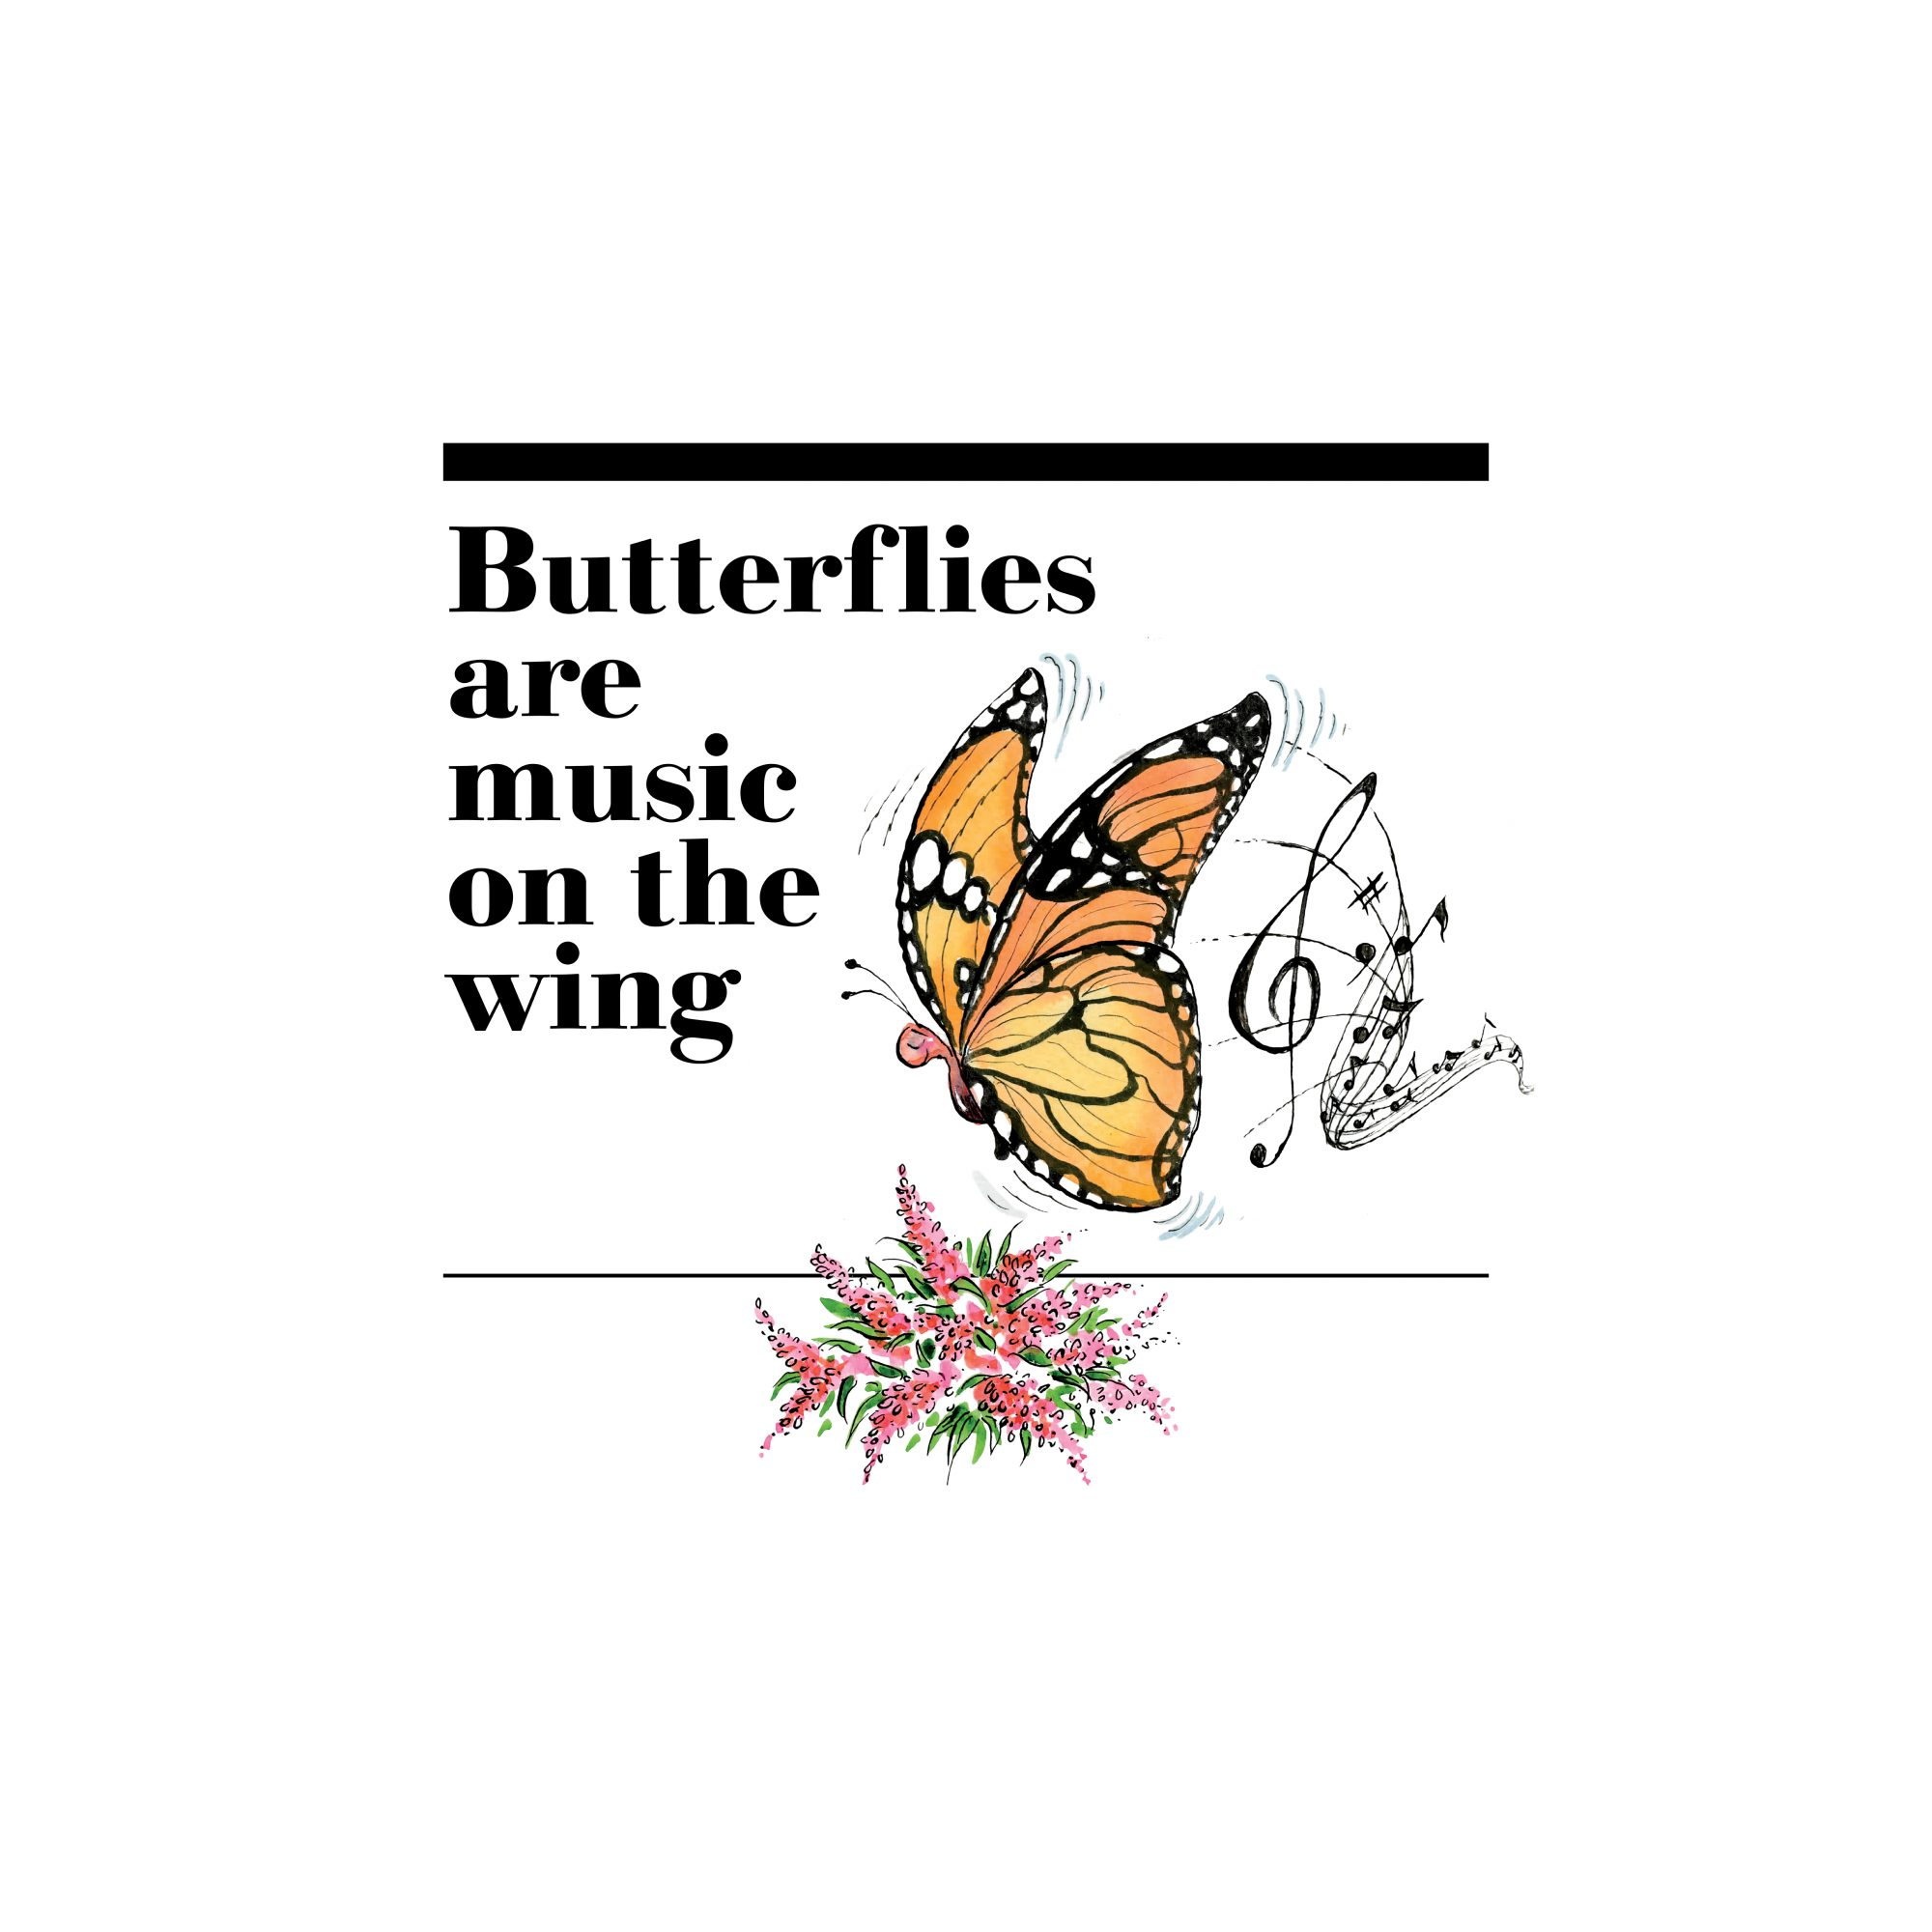 16. Butterflies are music on the wing.